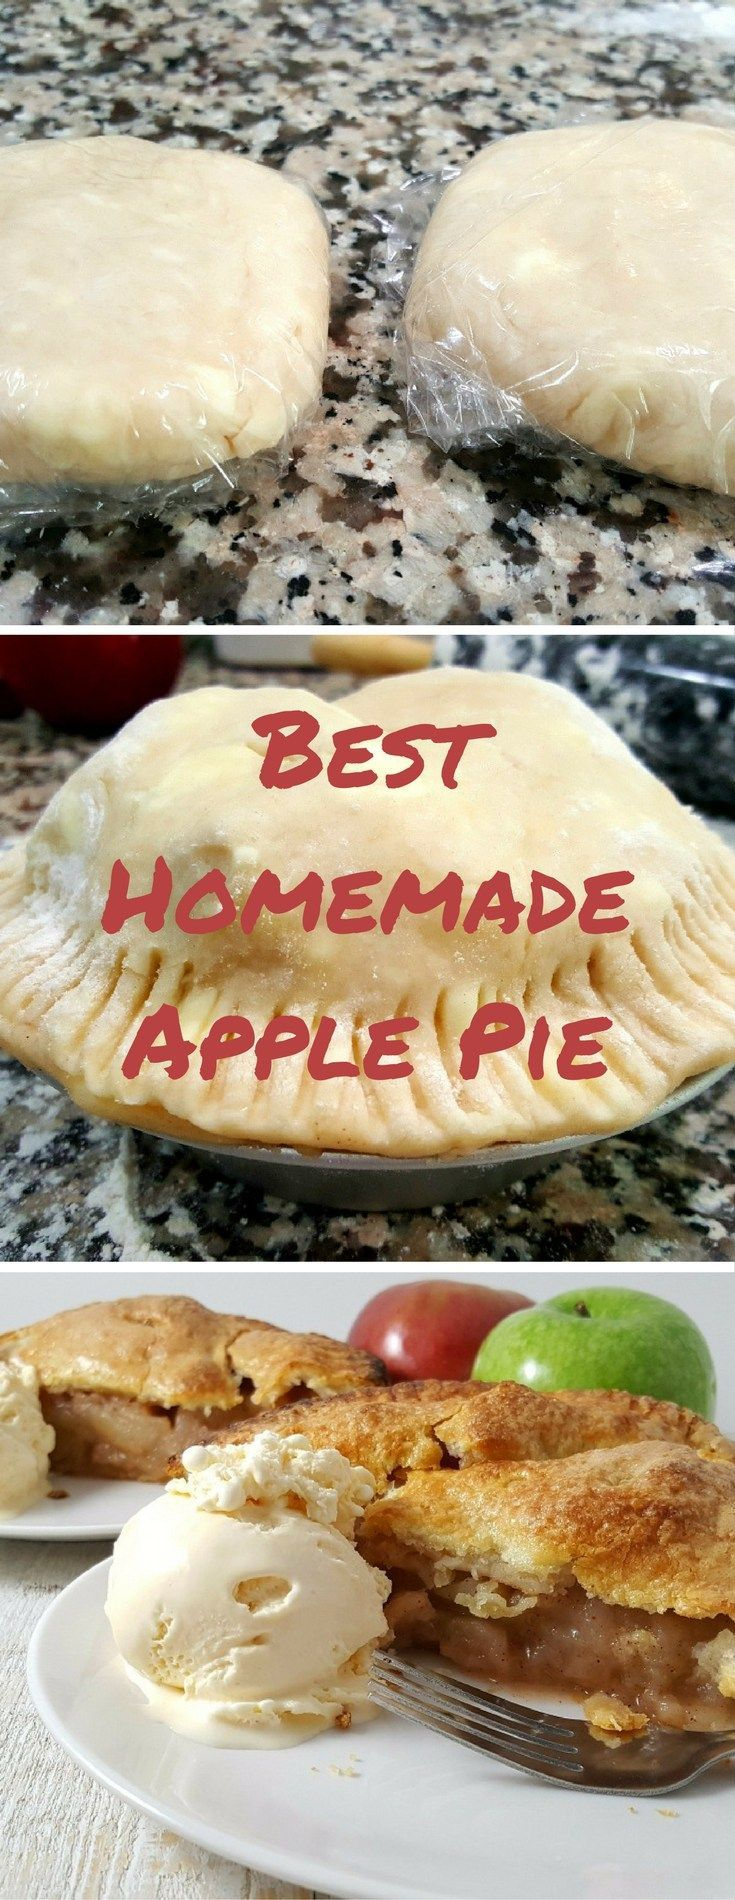 Best Homemade Apple Pie, has an easy, no-fail, buttery, flaky homemade pie crust and filled with two types of apples and the perfect mix of spices. This recipe serves 2 and makes one 6 inch apple pie. To make a 9 inch pie, adjust the serving to 2 on the recipe card. #bestrecipe #homemade #applepie #apple #pie #recipefortwo #dessertfortwo